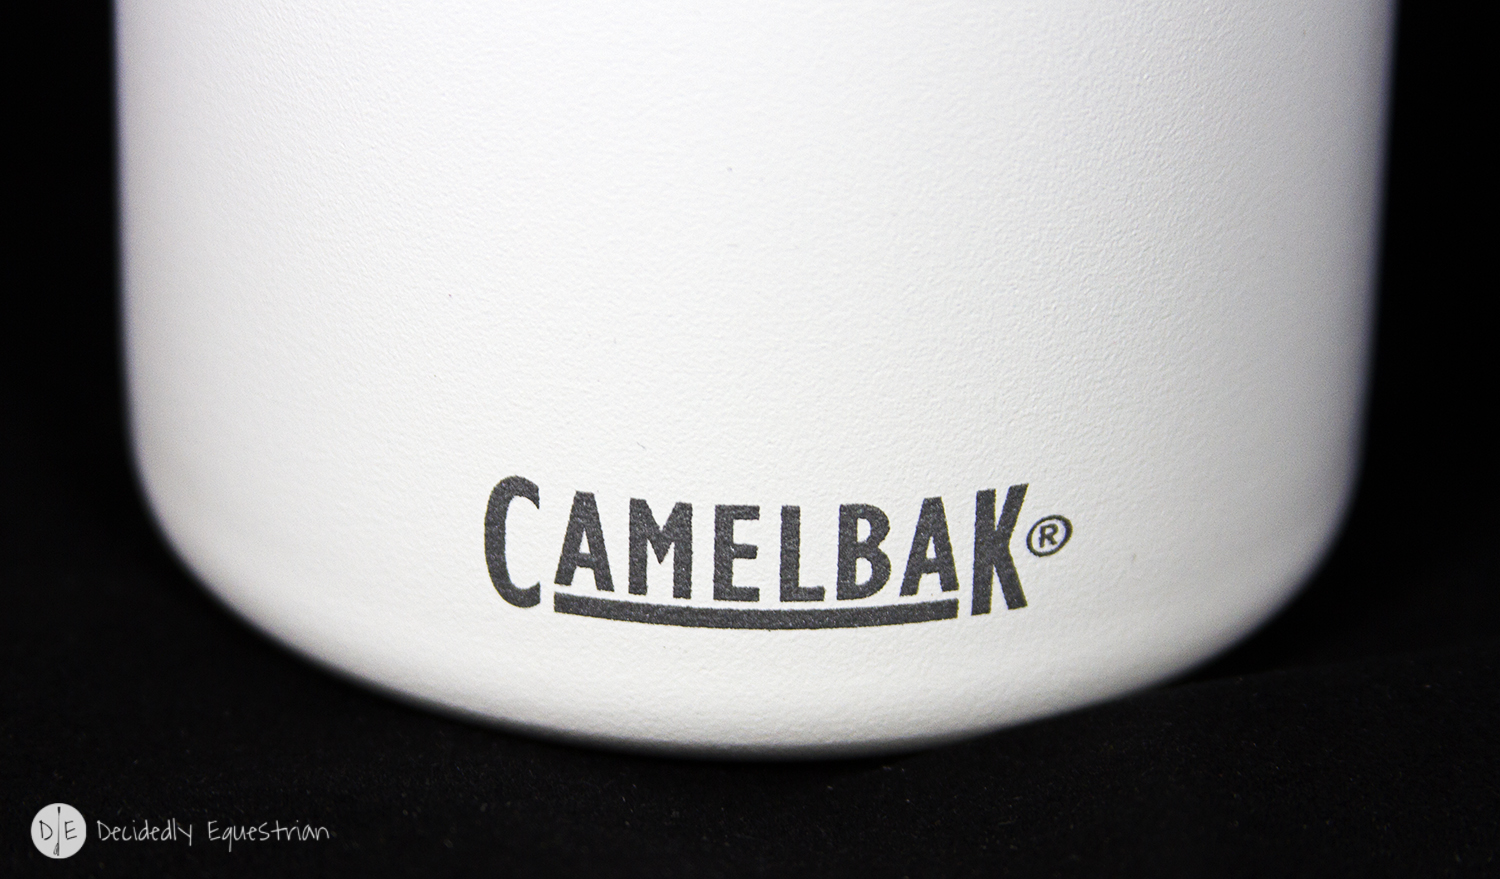 CamelBak Chute Mag Water Bottle Review